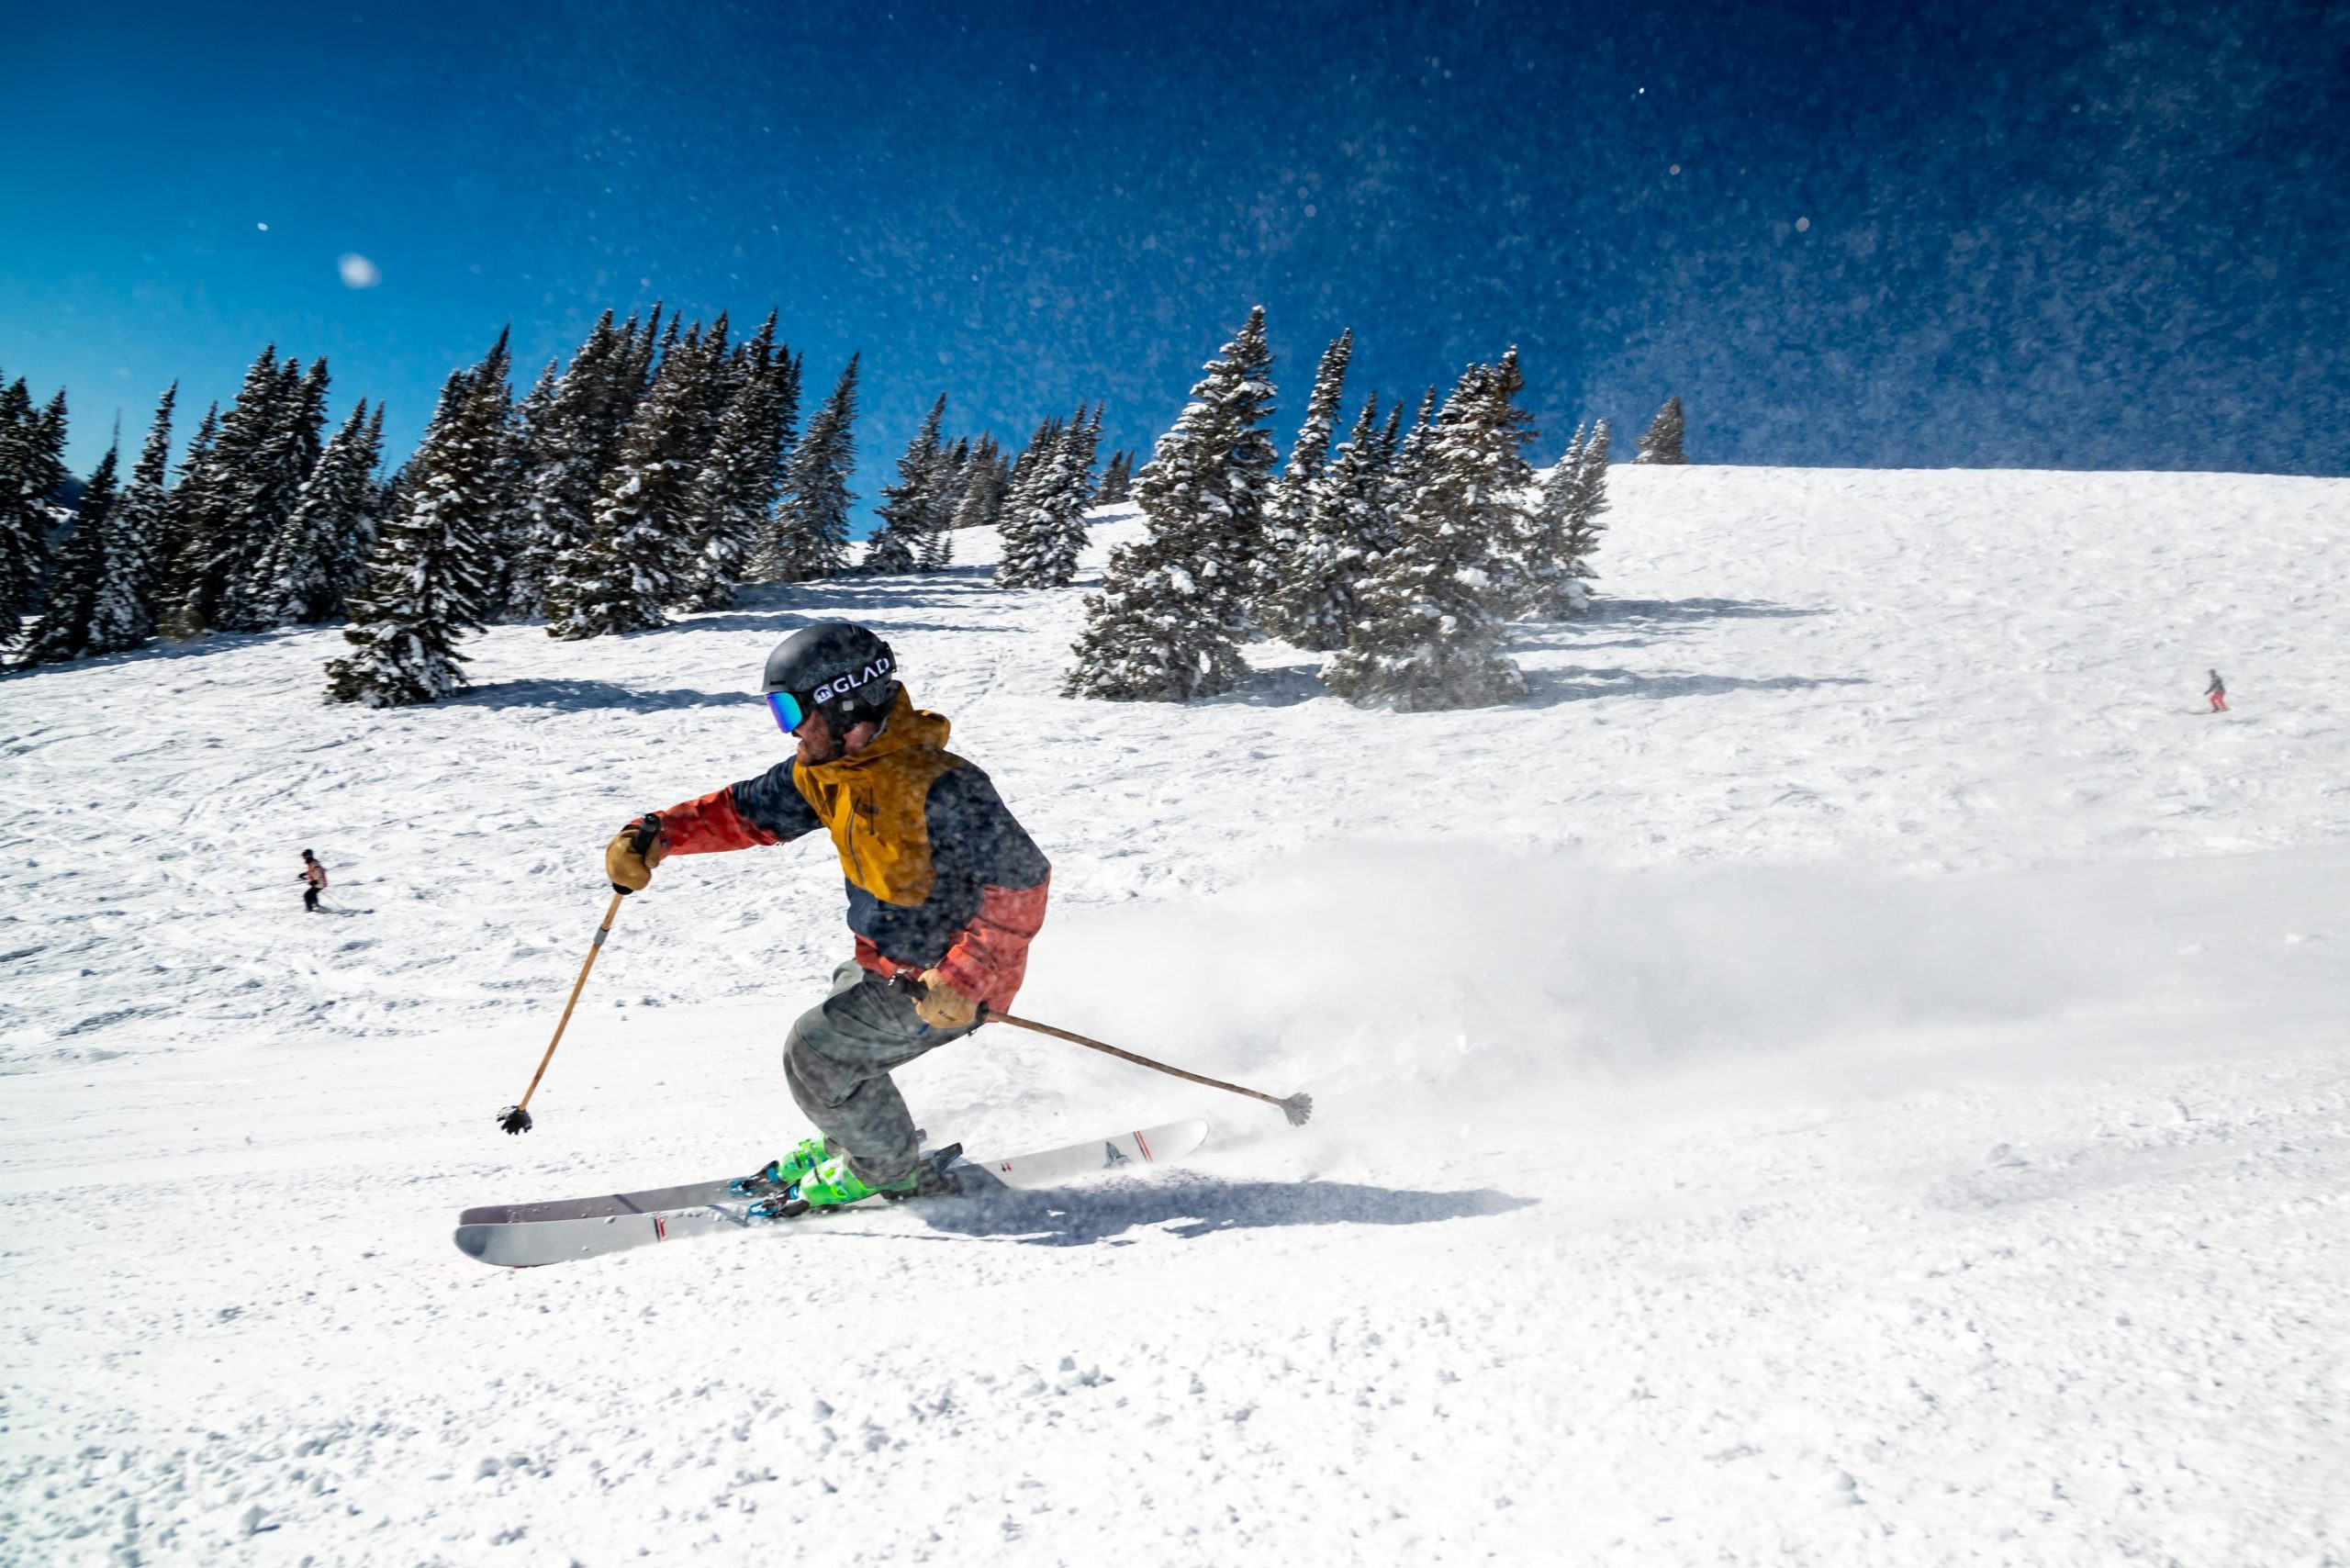 Best Energy Drinks For Snow Skiing (Winter is Coming)